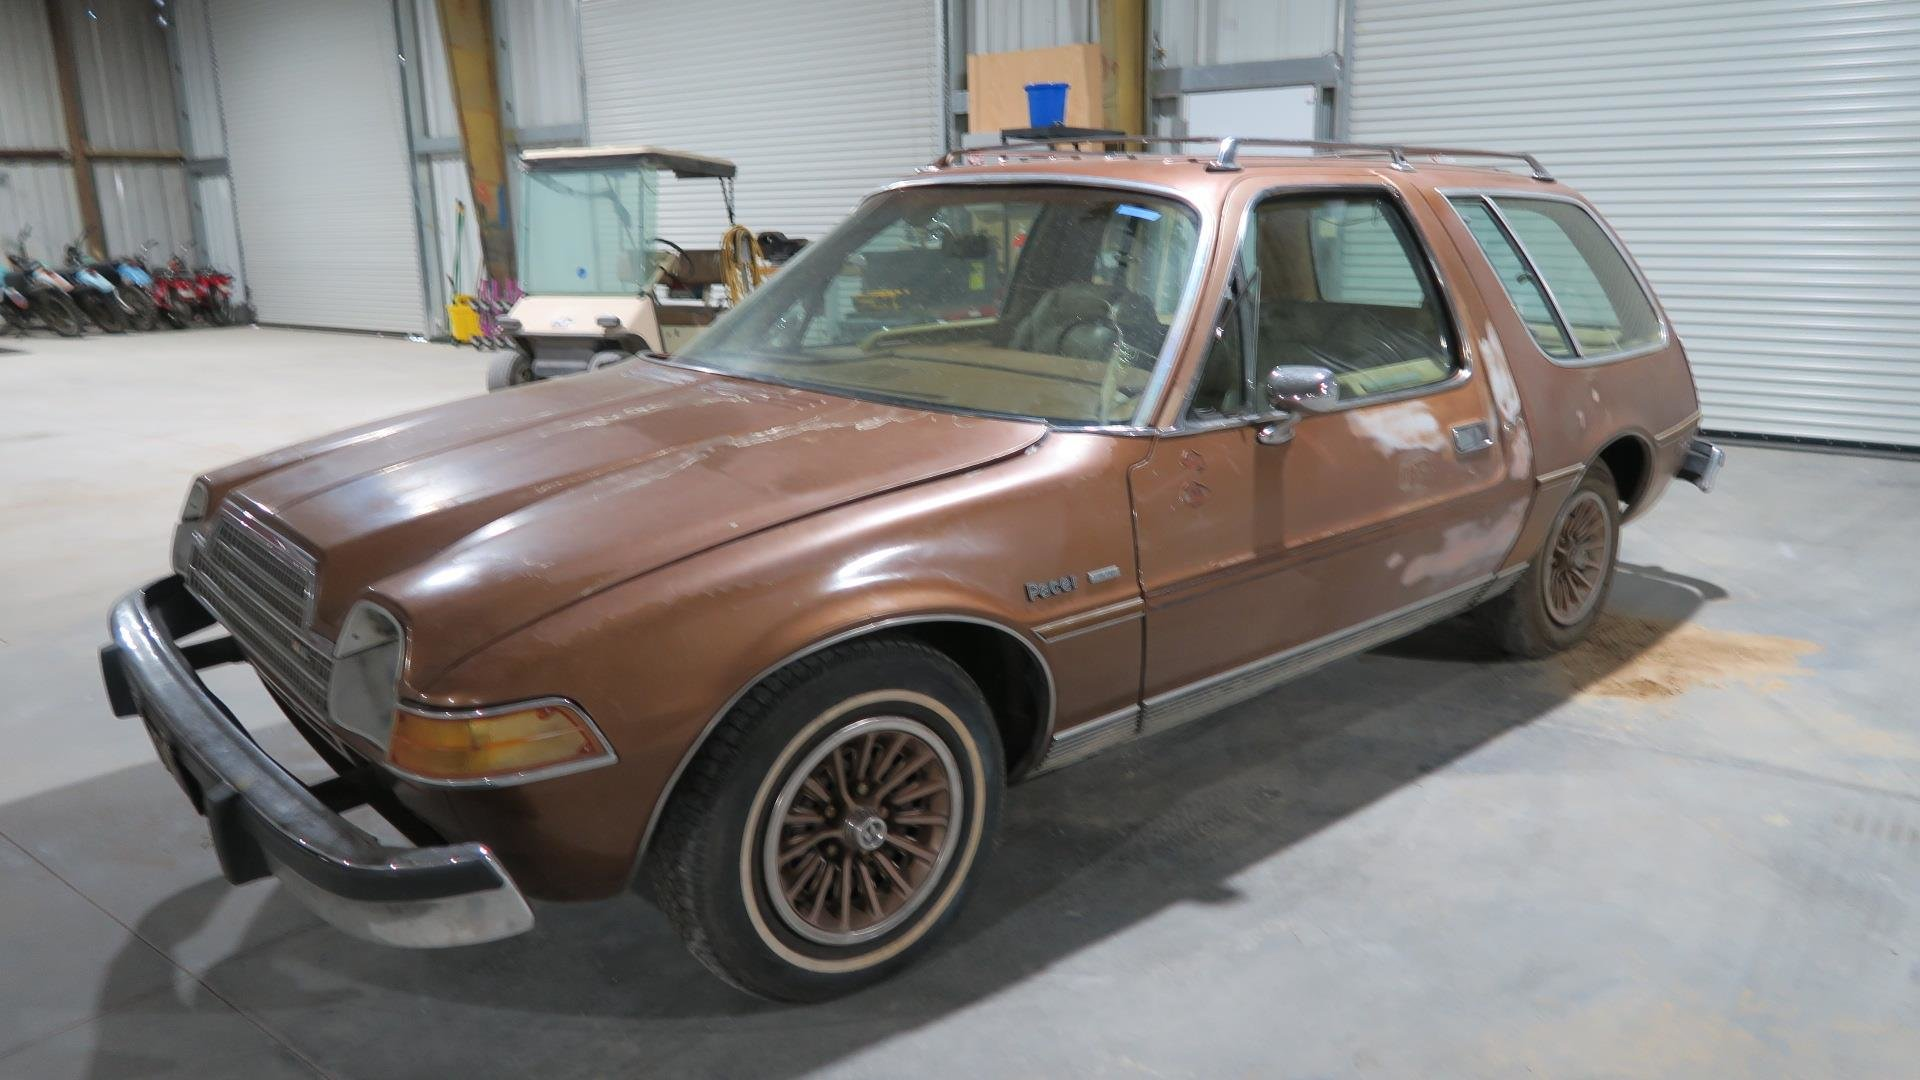 1979 AMC Pacer 6-cyls Auto PW Dry Driver All Tan $5.9k For Sale (picture 1 of 1)